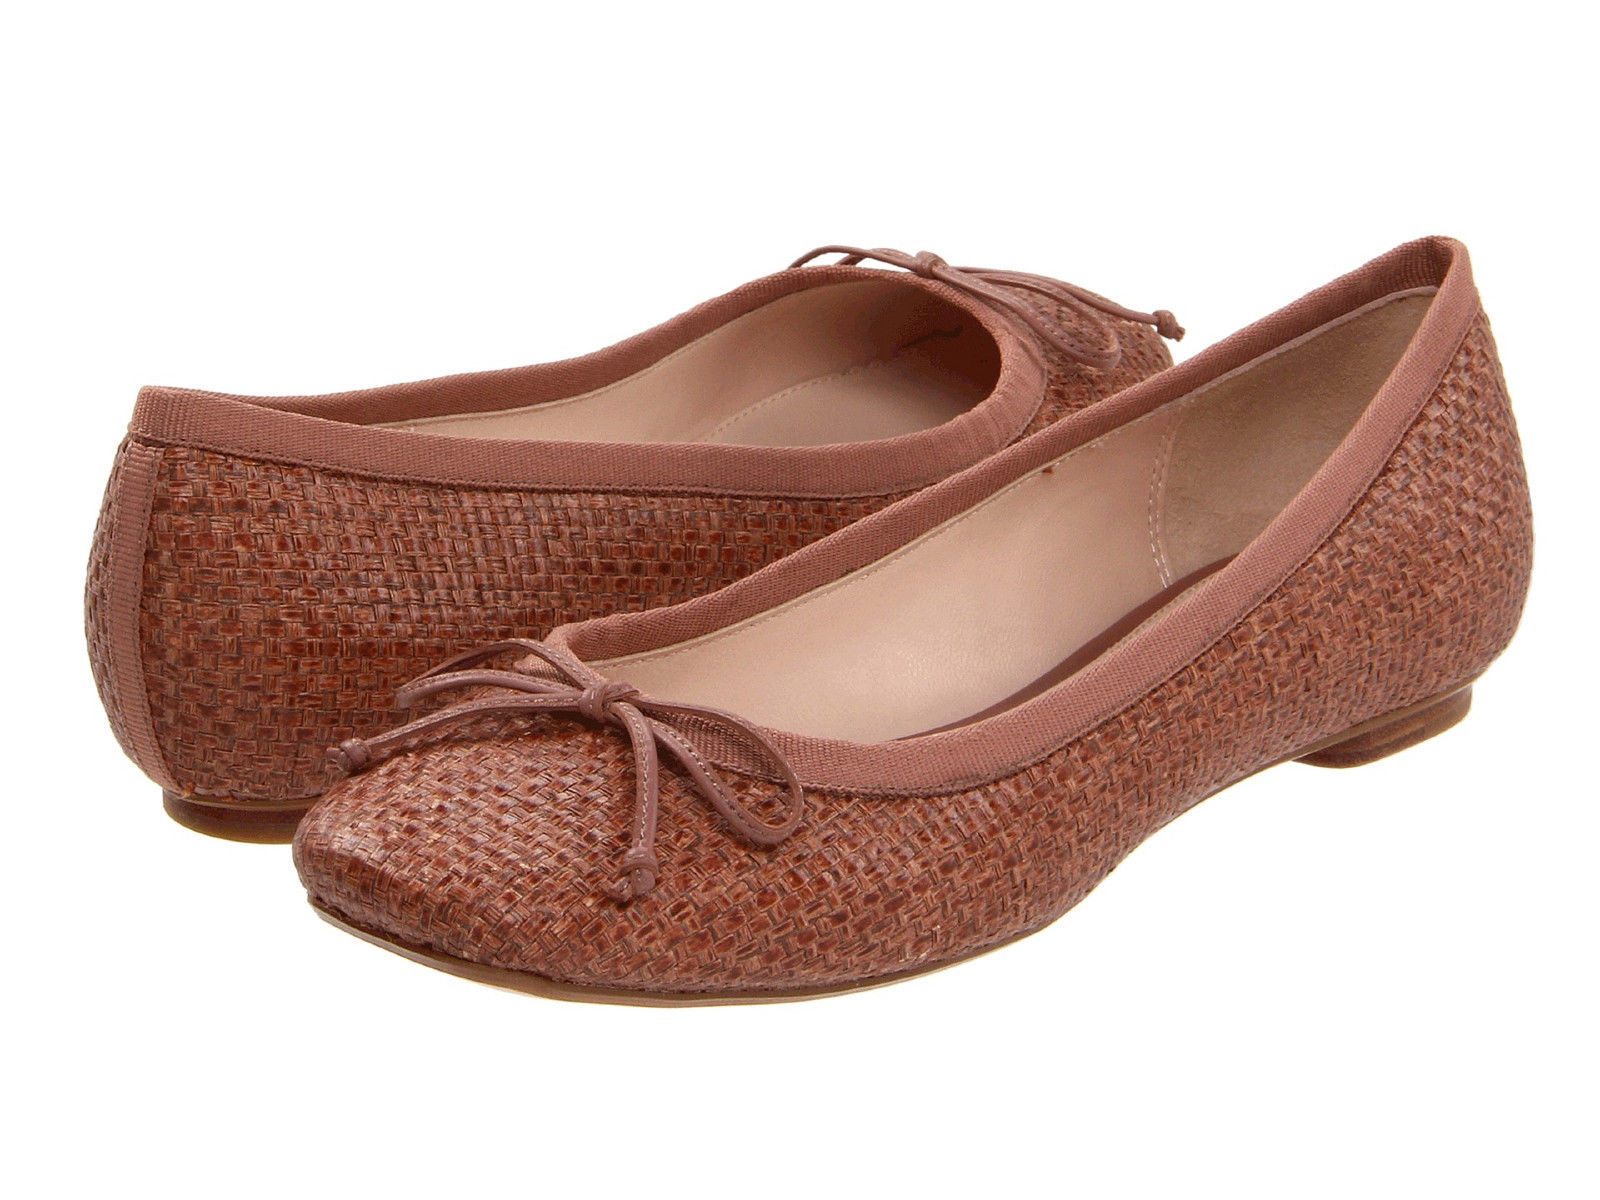 Ballet Flat Shoes Oprah